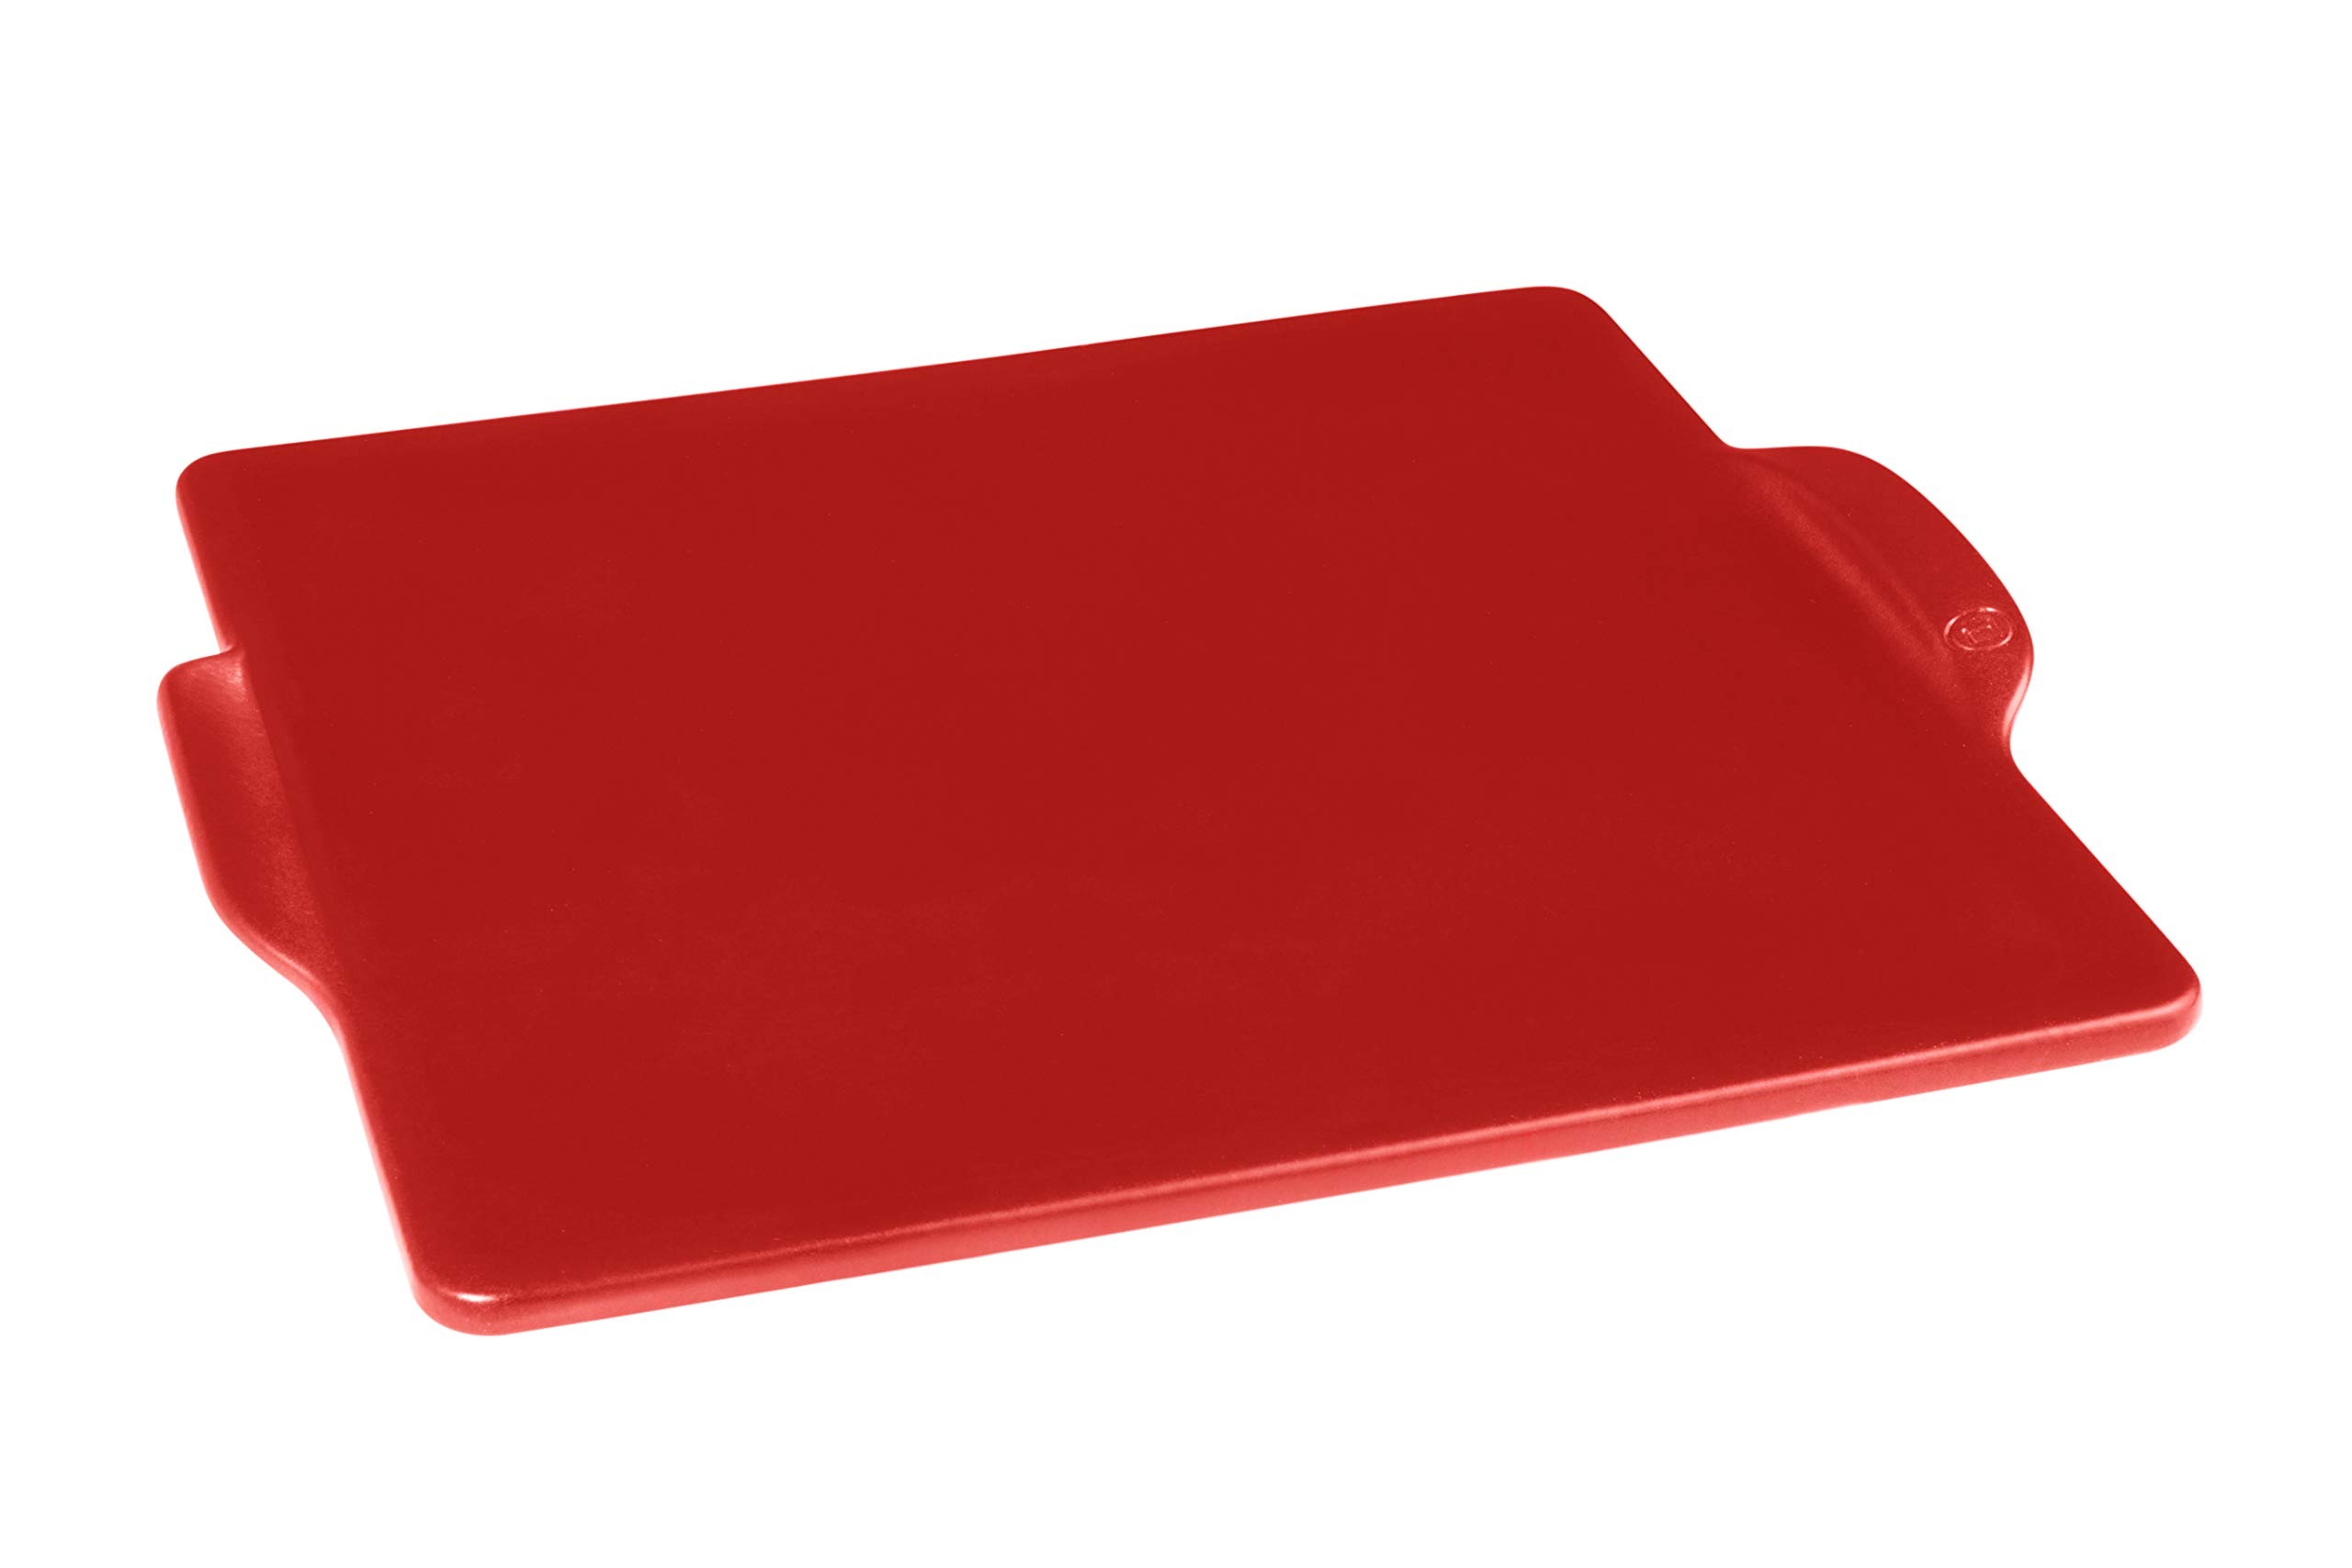 Emile Henry 347524 Square, Burgundy pizza stone, 14 in. x 14 in. in, by Emile Henry